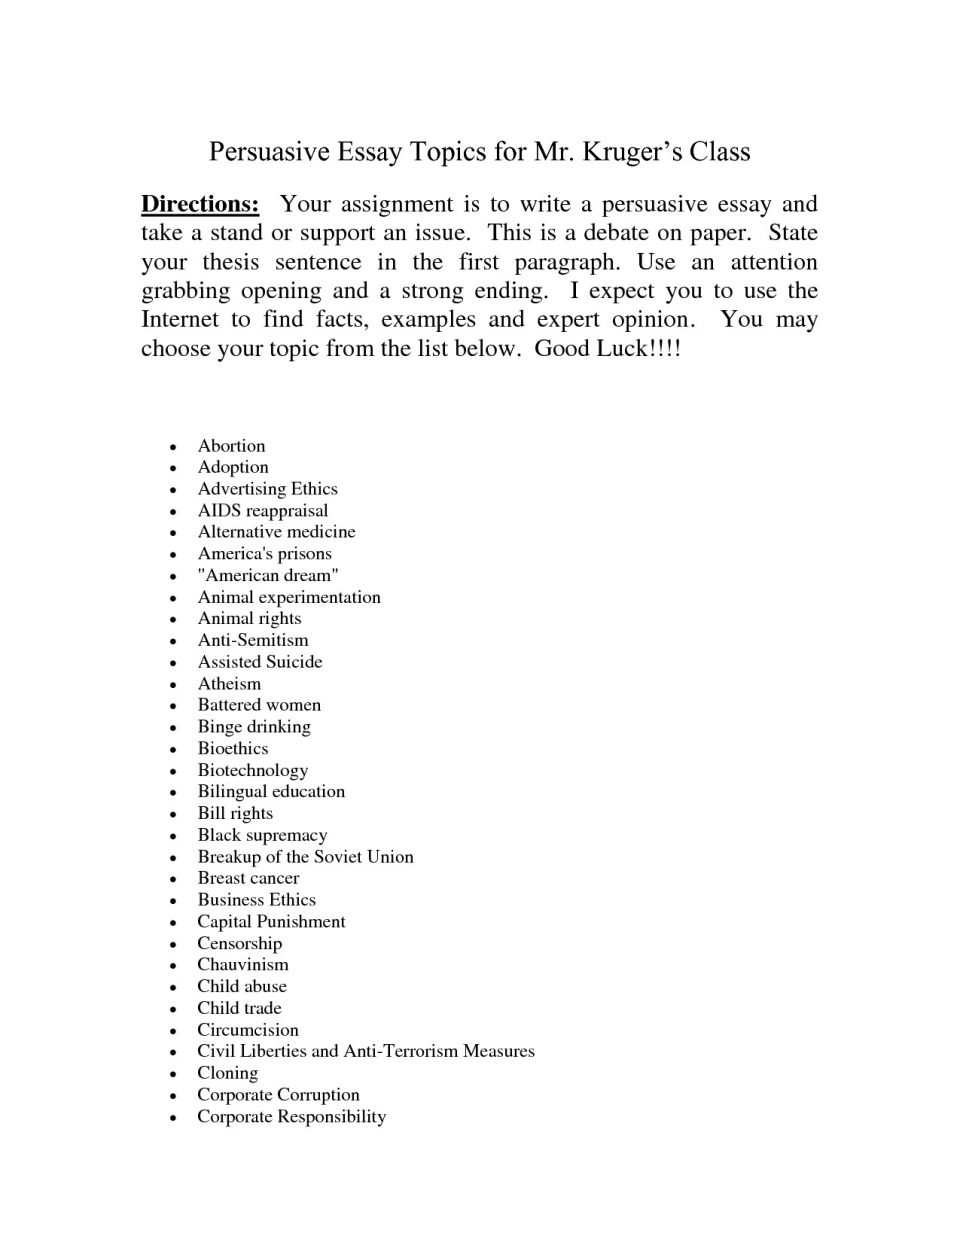 012 Research Paper Topics To Write On Topic For Essay Barca Fontanacountryinn Within Good Persuasive Narrative Abo Easy About Personal Descriptive Fearsome A Fun History Full